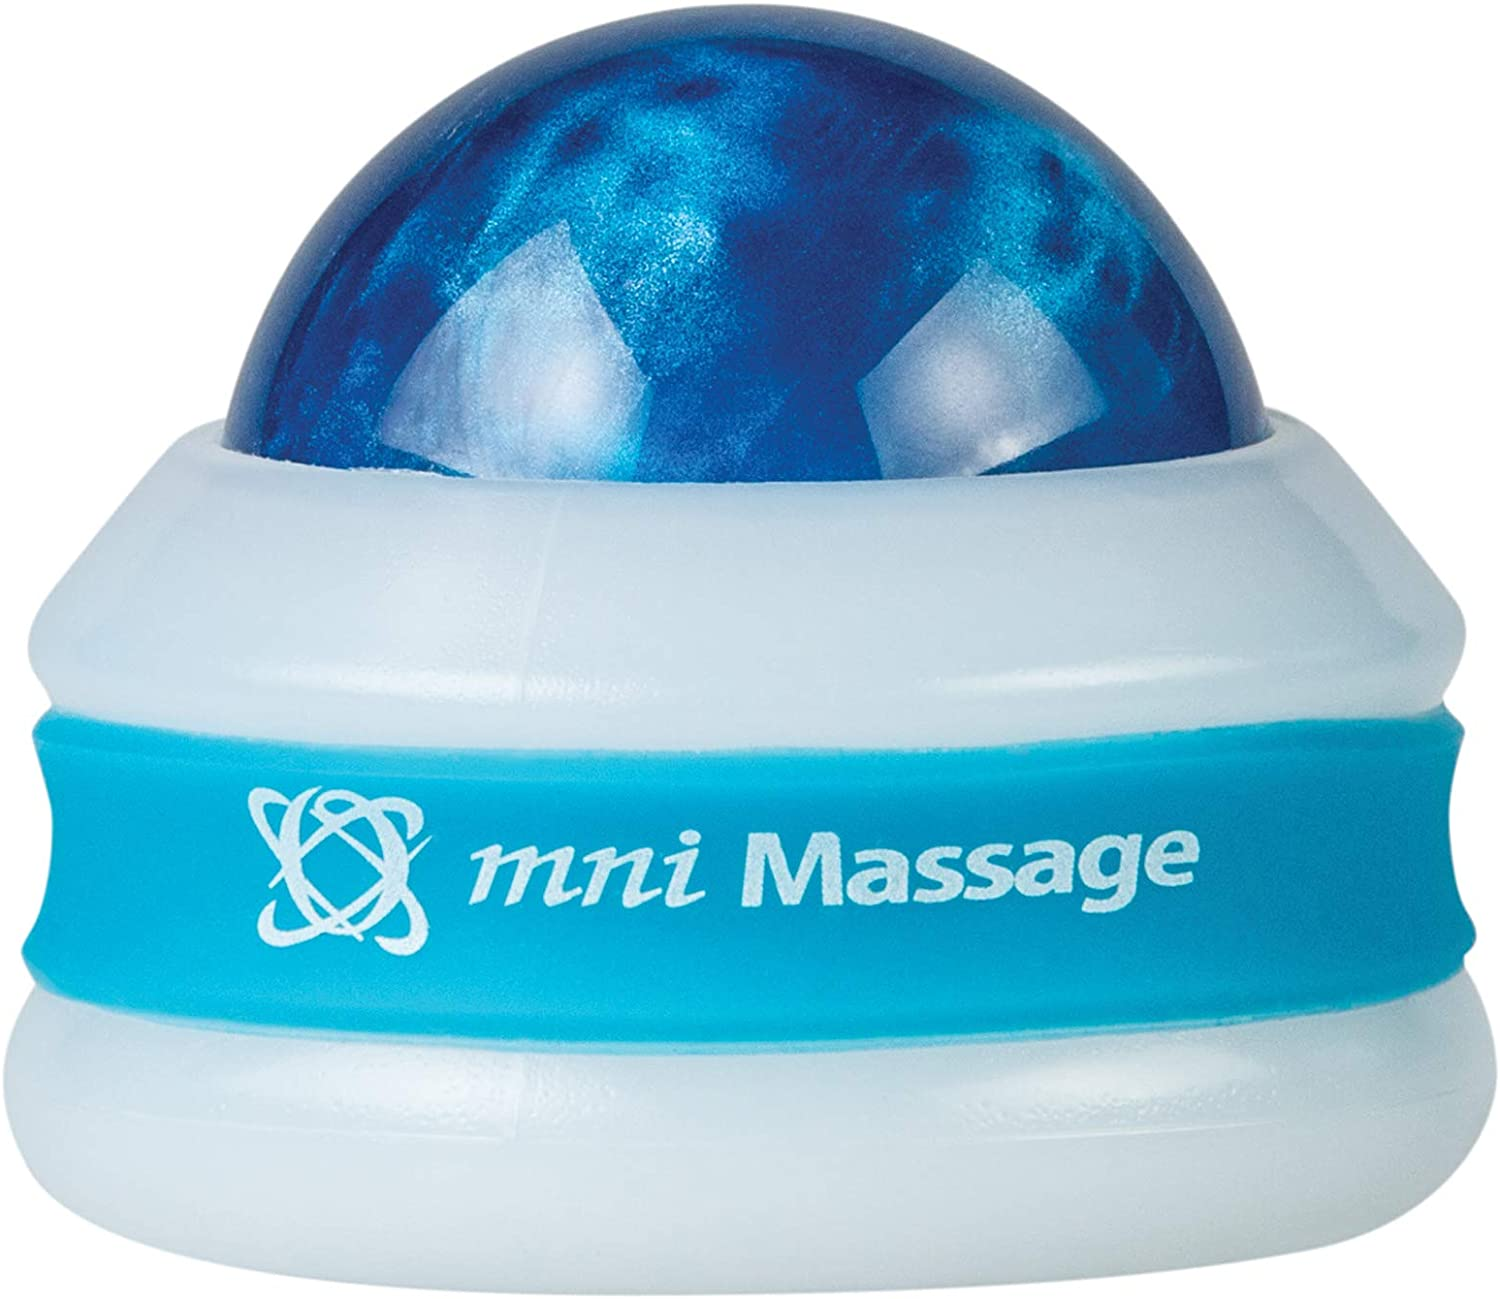 Core Products Mini Omni Massage Ball Manual Roller Massager for Self Massage Therapy Tool, White Cap - Blue: Health & Personal Care